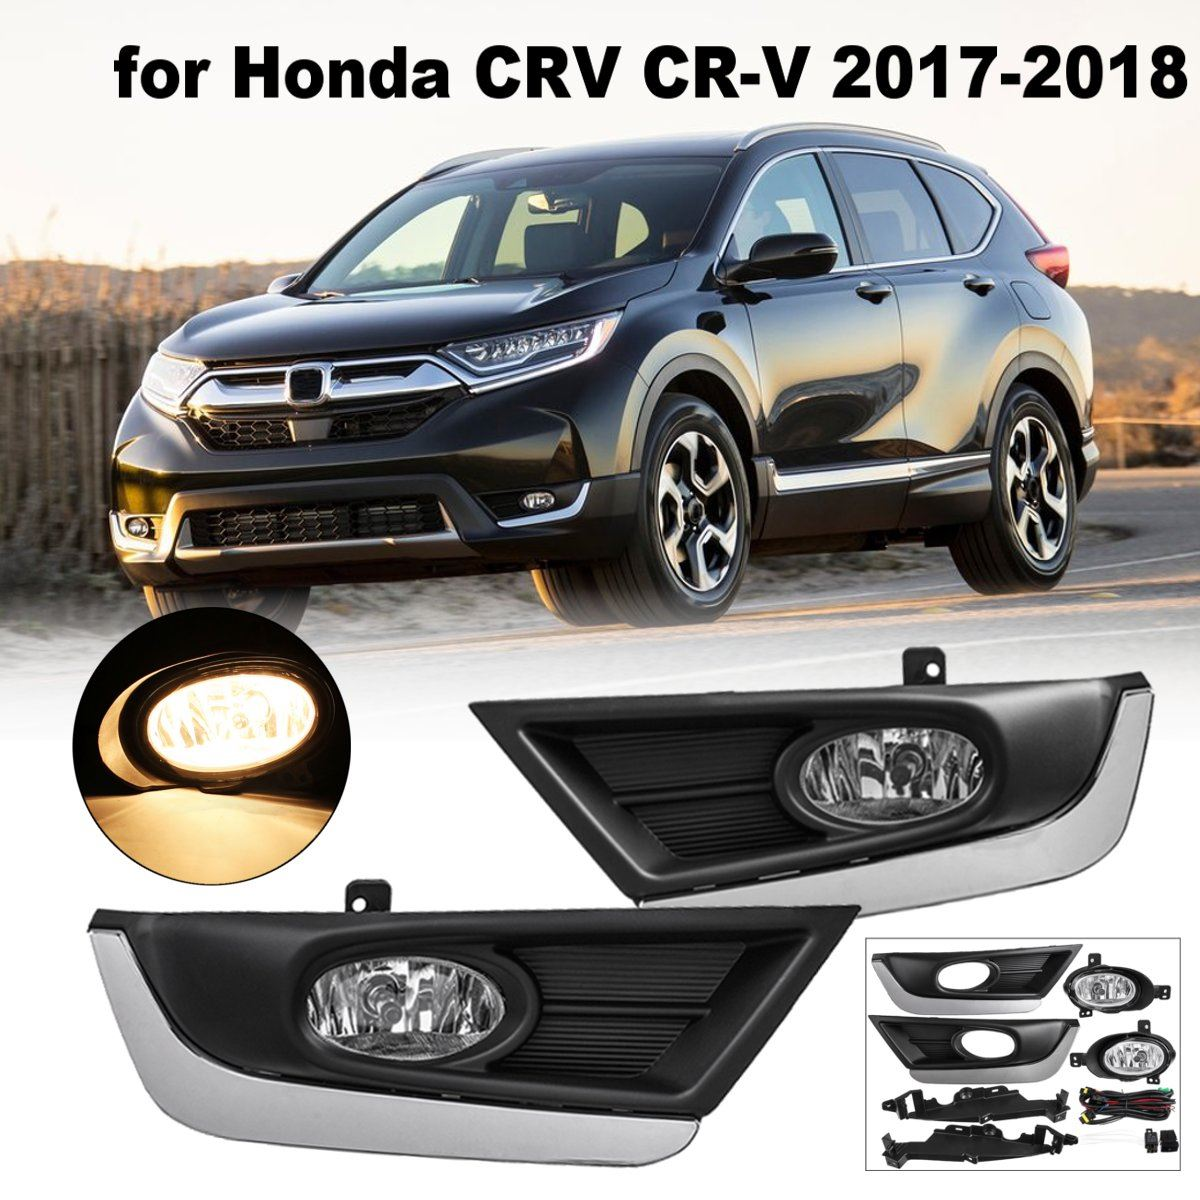 цена на Pair ABS Bumper Fog Lights Driving Lamps w/ Wiring Harness Front Left Right For Honda/CRV/CR-V 2017 2018 DC 12V 40A H11 Bulbs